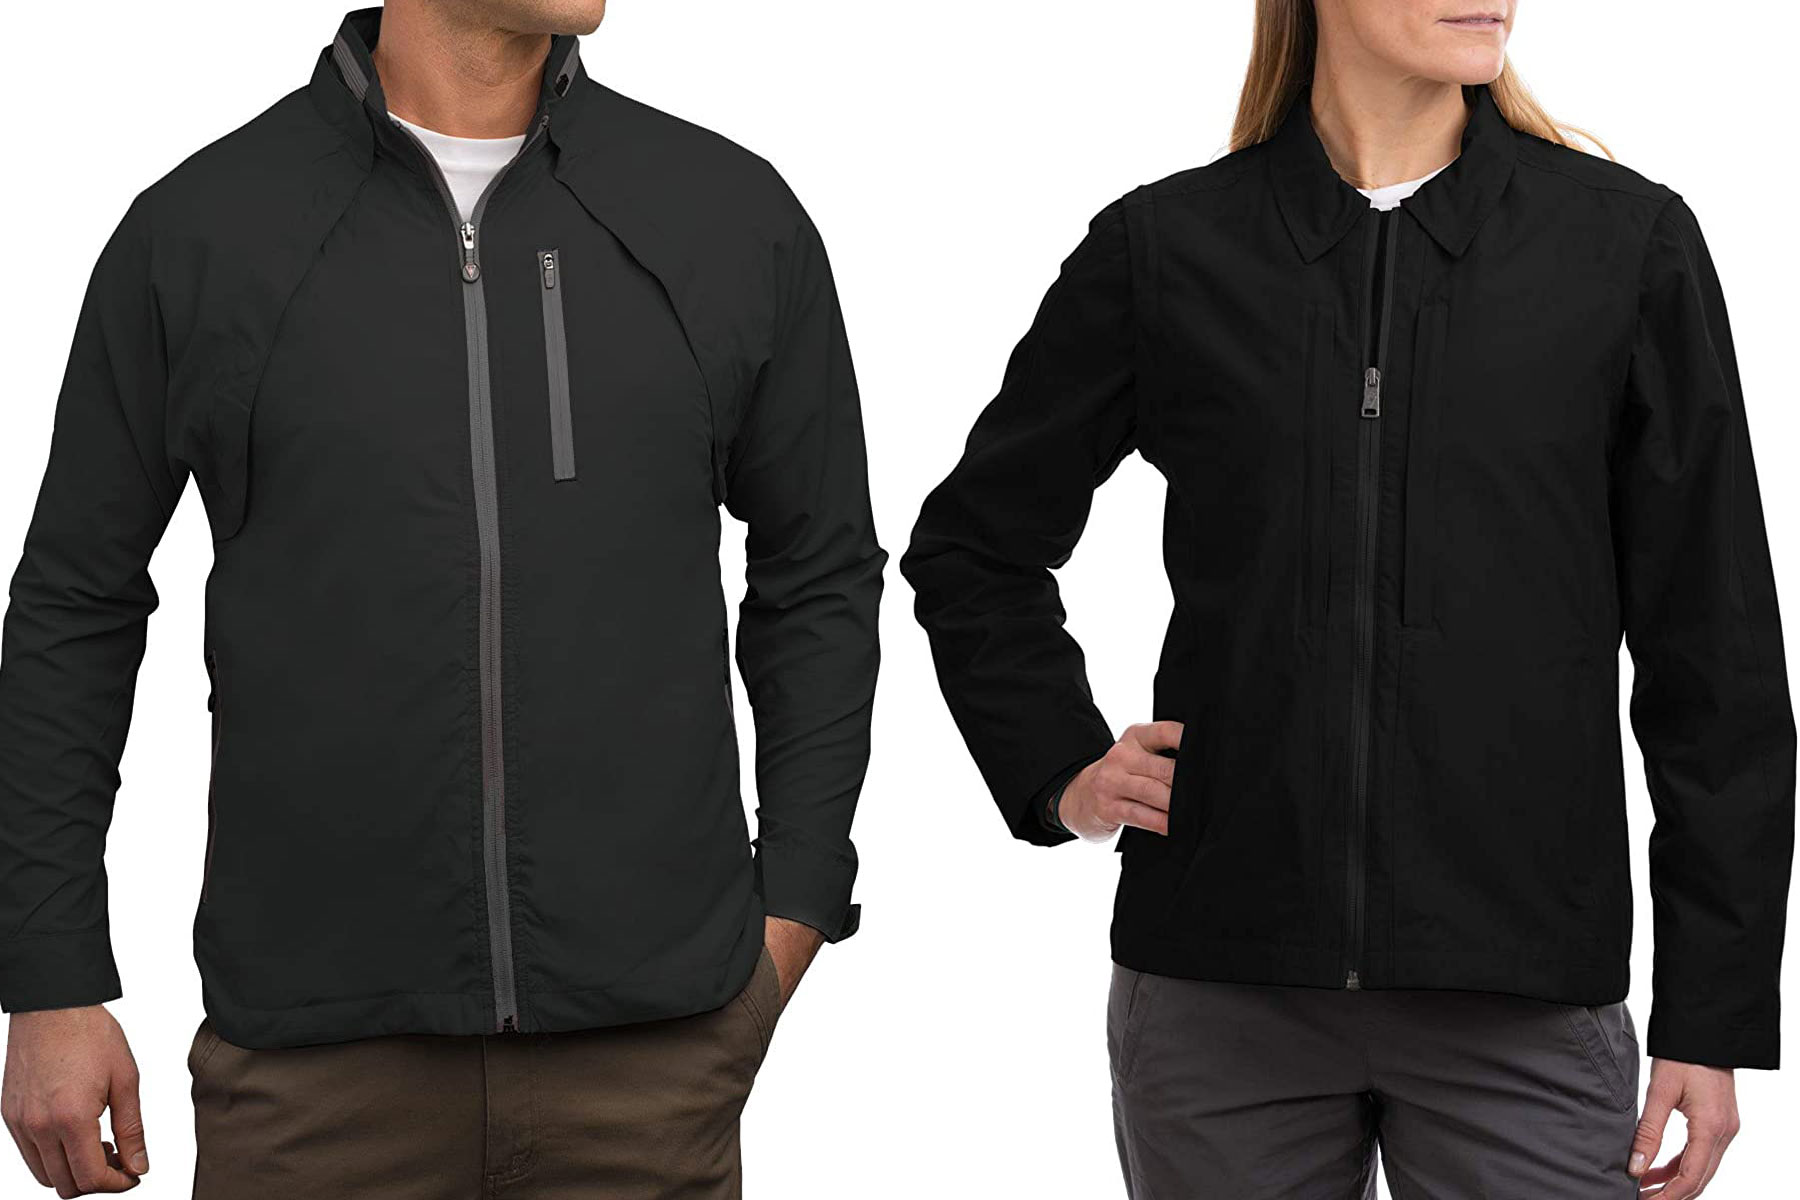 Man and woman wearing black zip up jackets